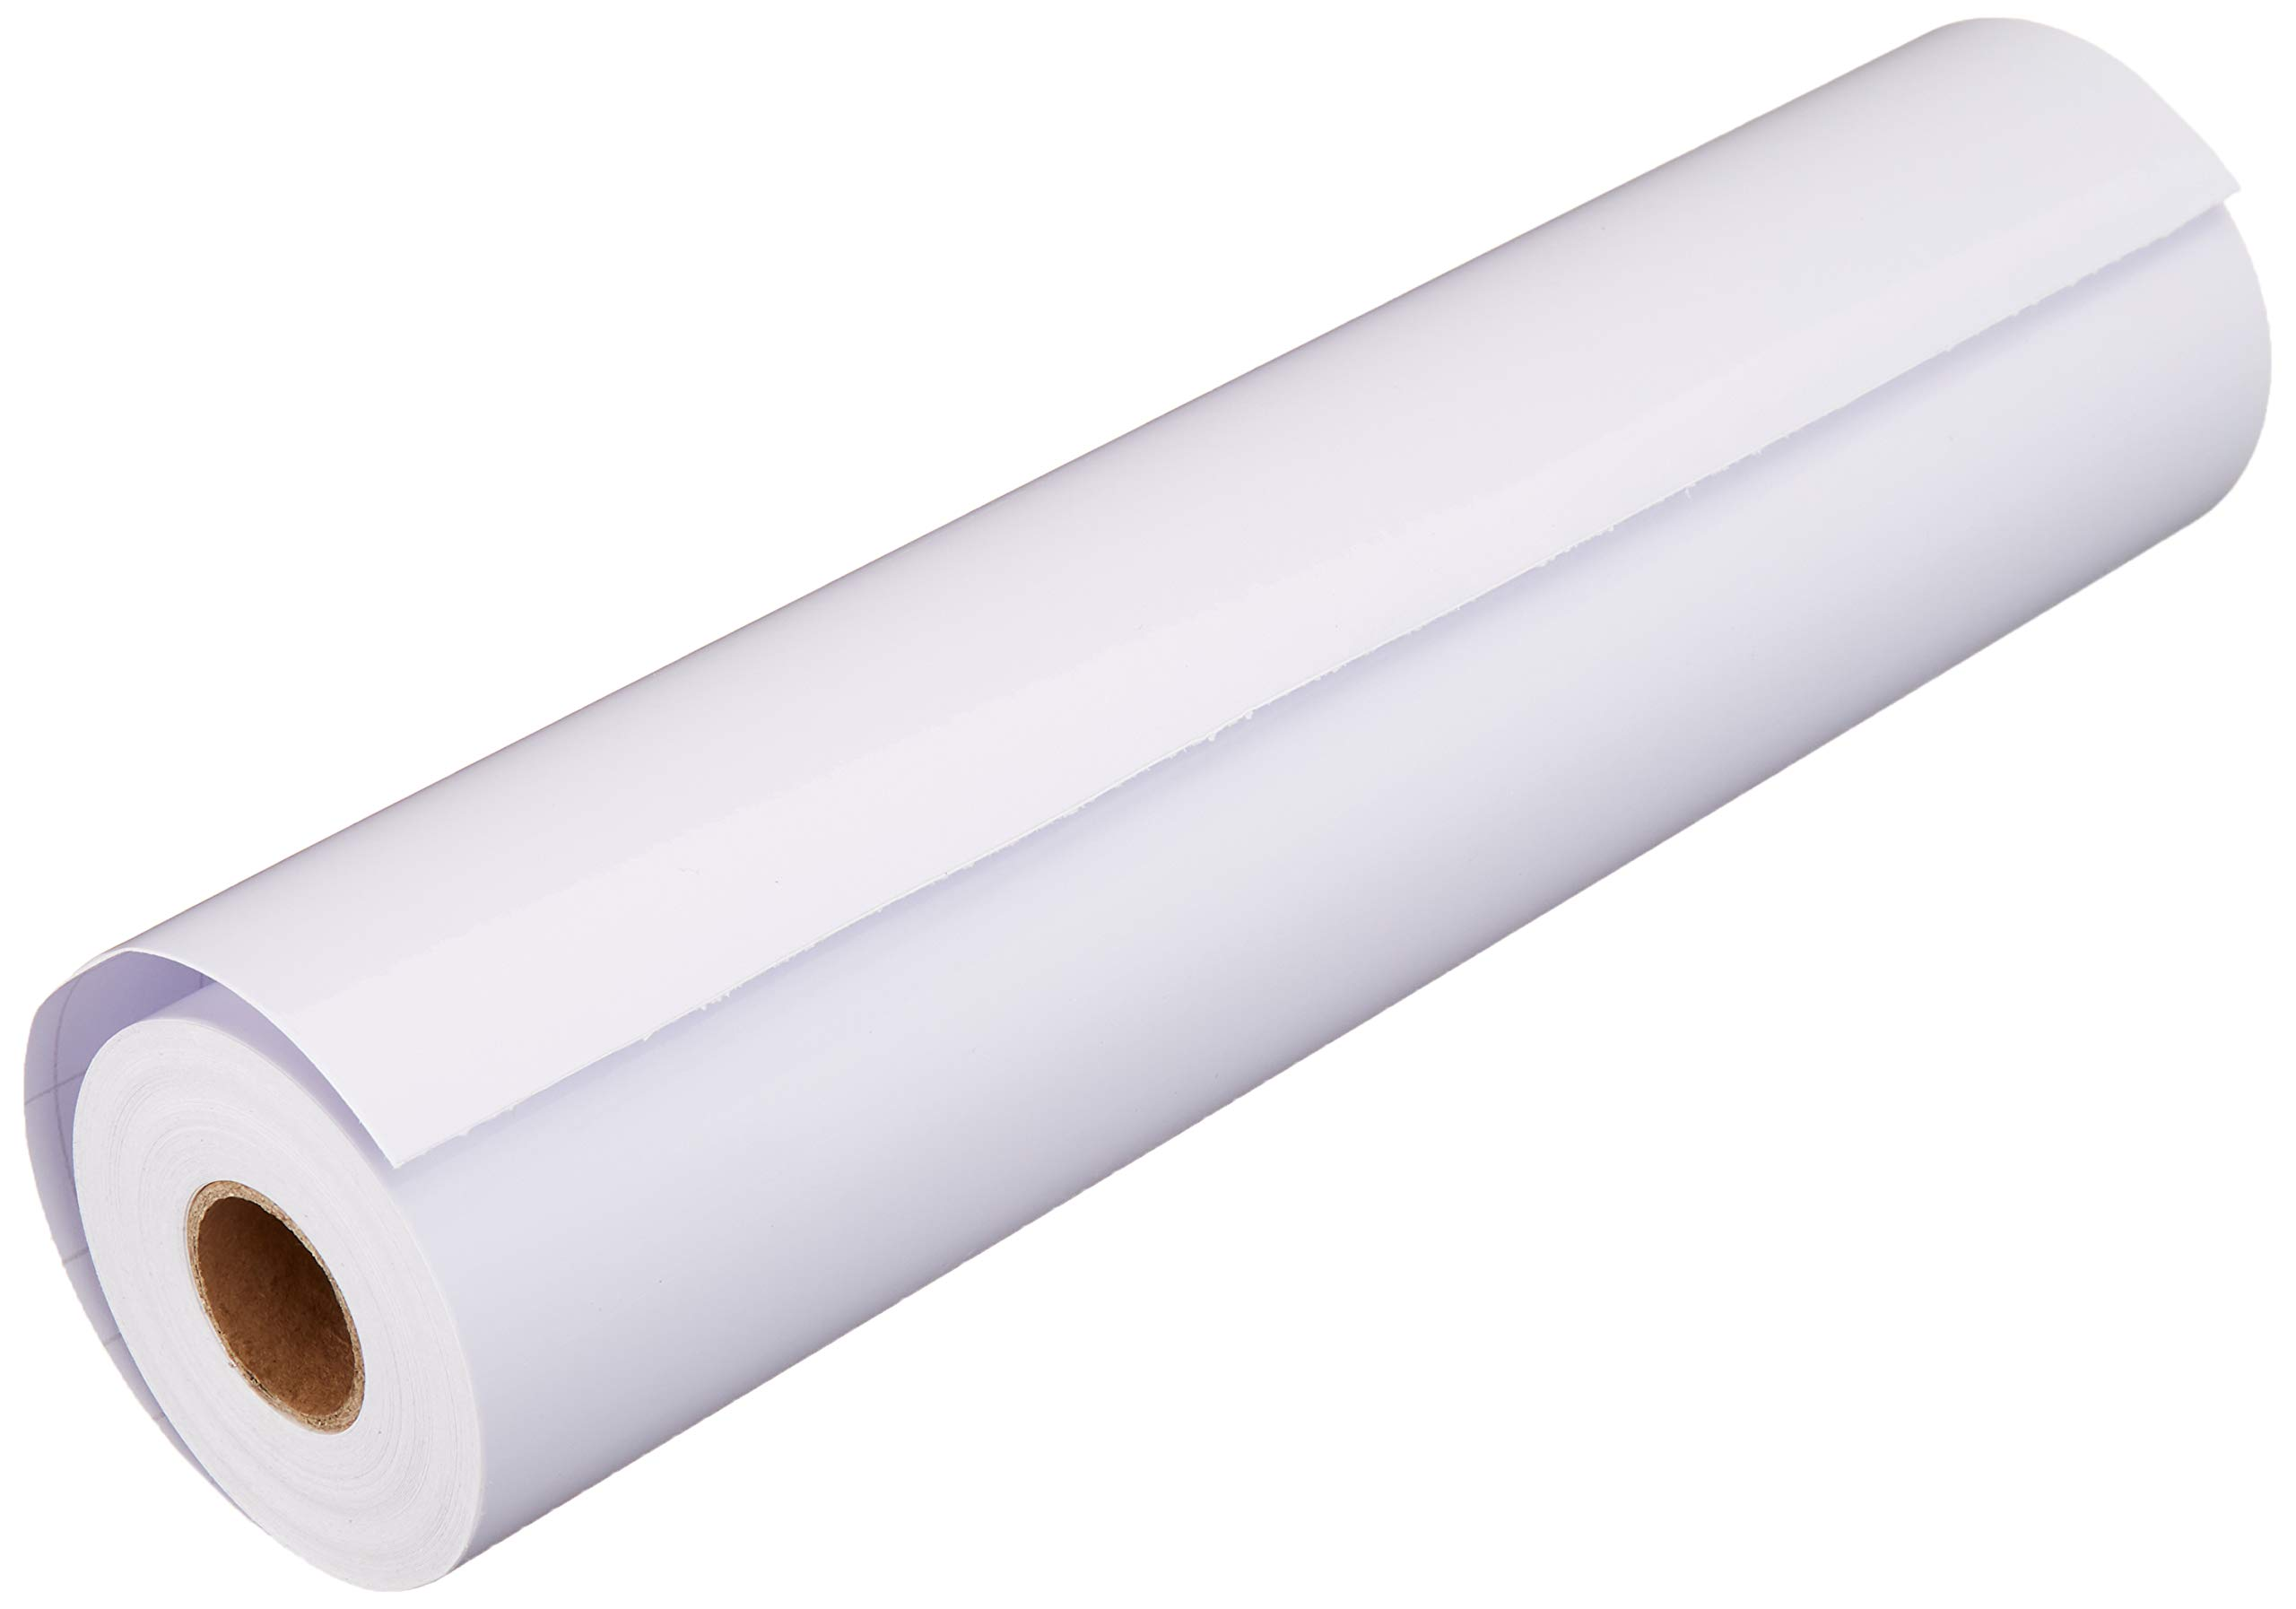 Glossy White Adhesive Vinyl Roll - Huge Glossy Adhesive Permanent White Vinyl Rolls - 12''x40FT White Vinyl Sheets Best Vynil - PrimeCutsUSA White Vinyl Wrap Works with Cricut and Other Cutters by PrimeCuts